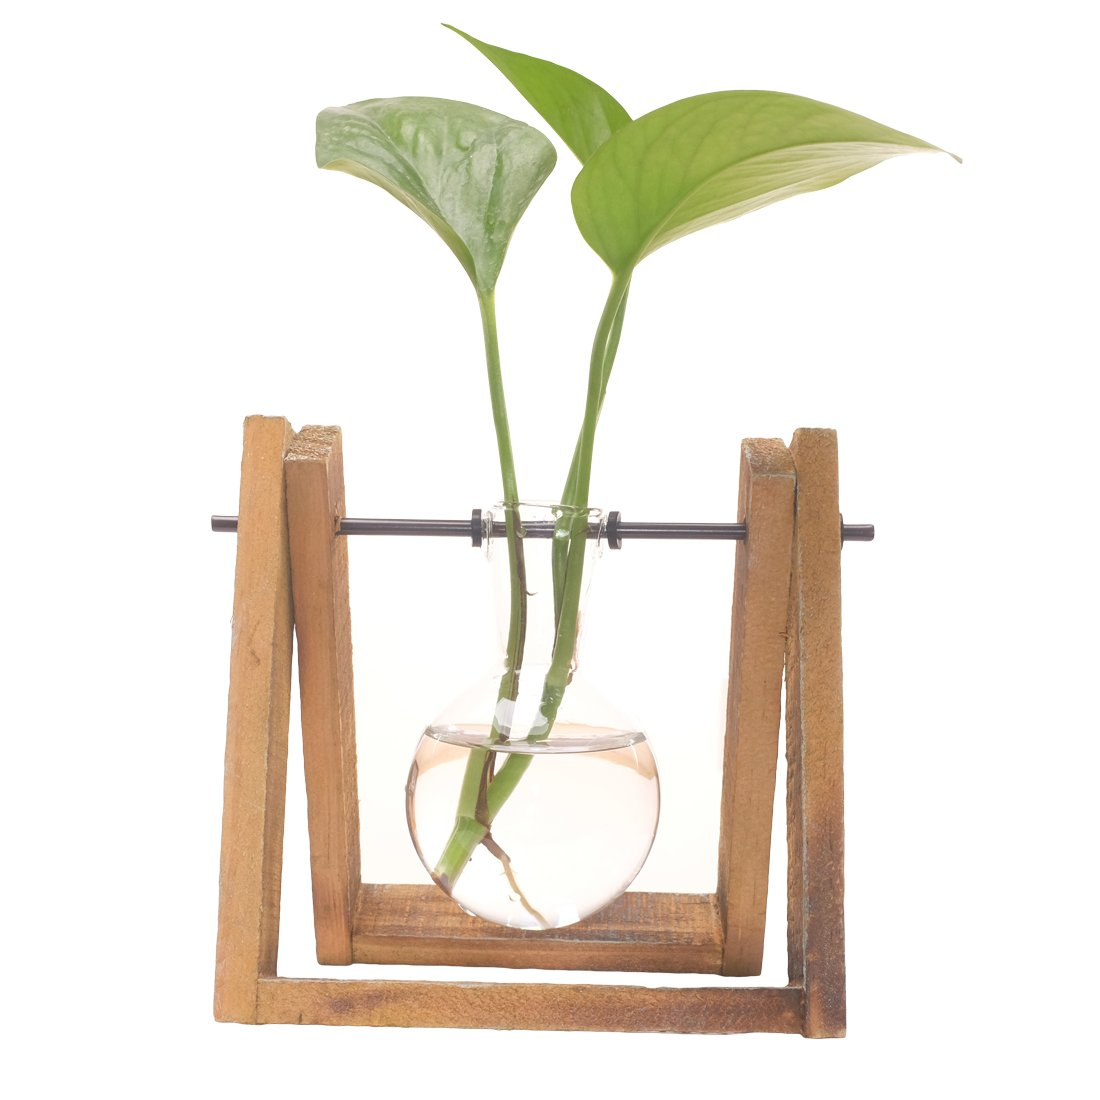 Plant Terrarium with Wooden Stand Glass Vase Holder for Home Decoration,Scindapsus Container (1 Terrariums)